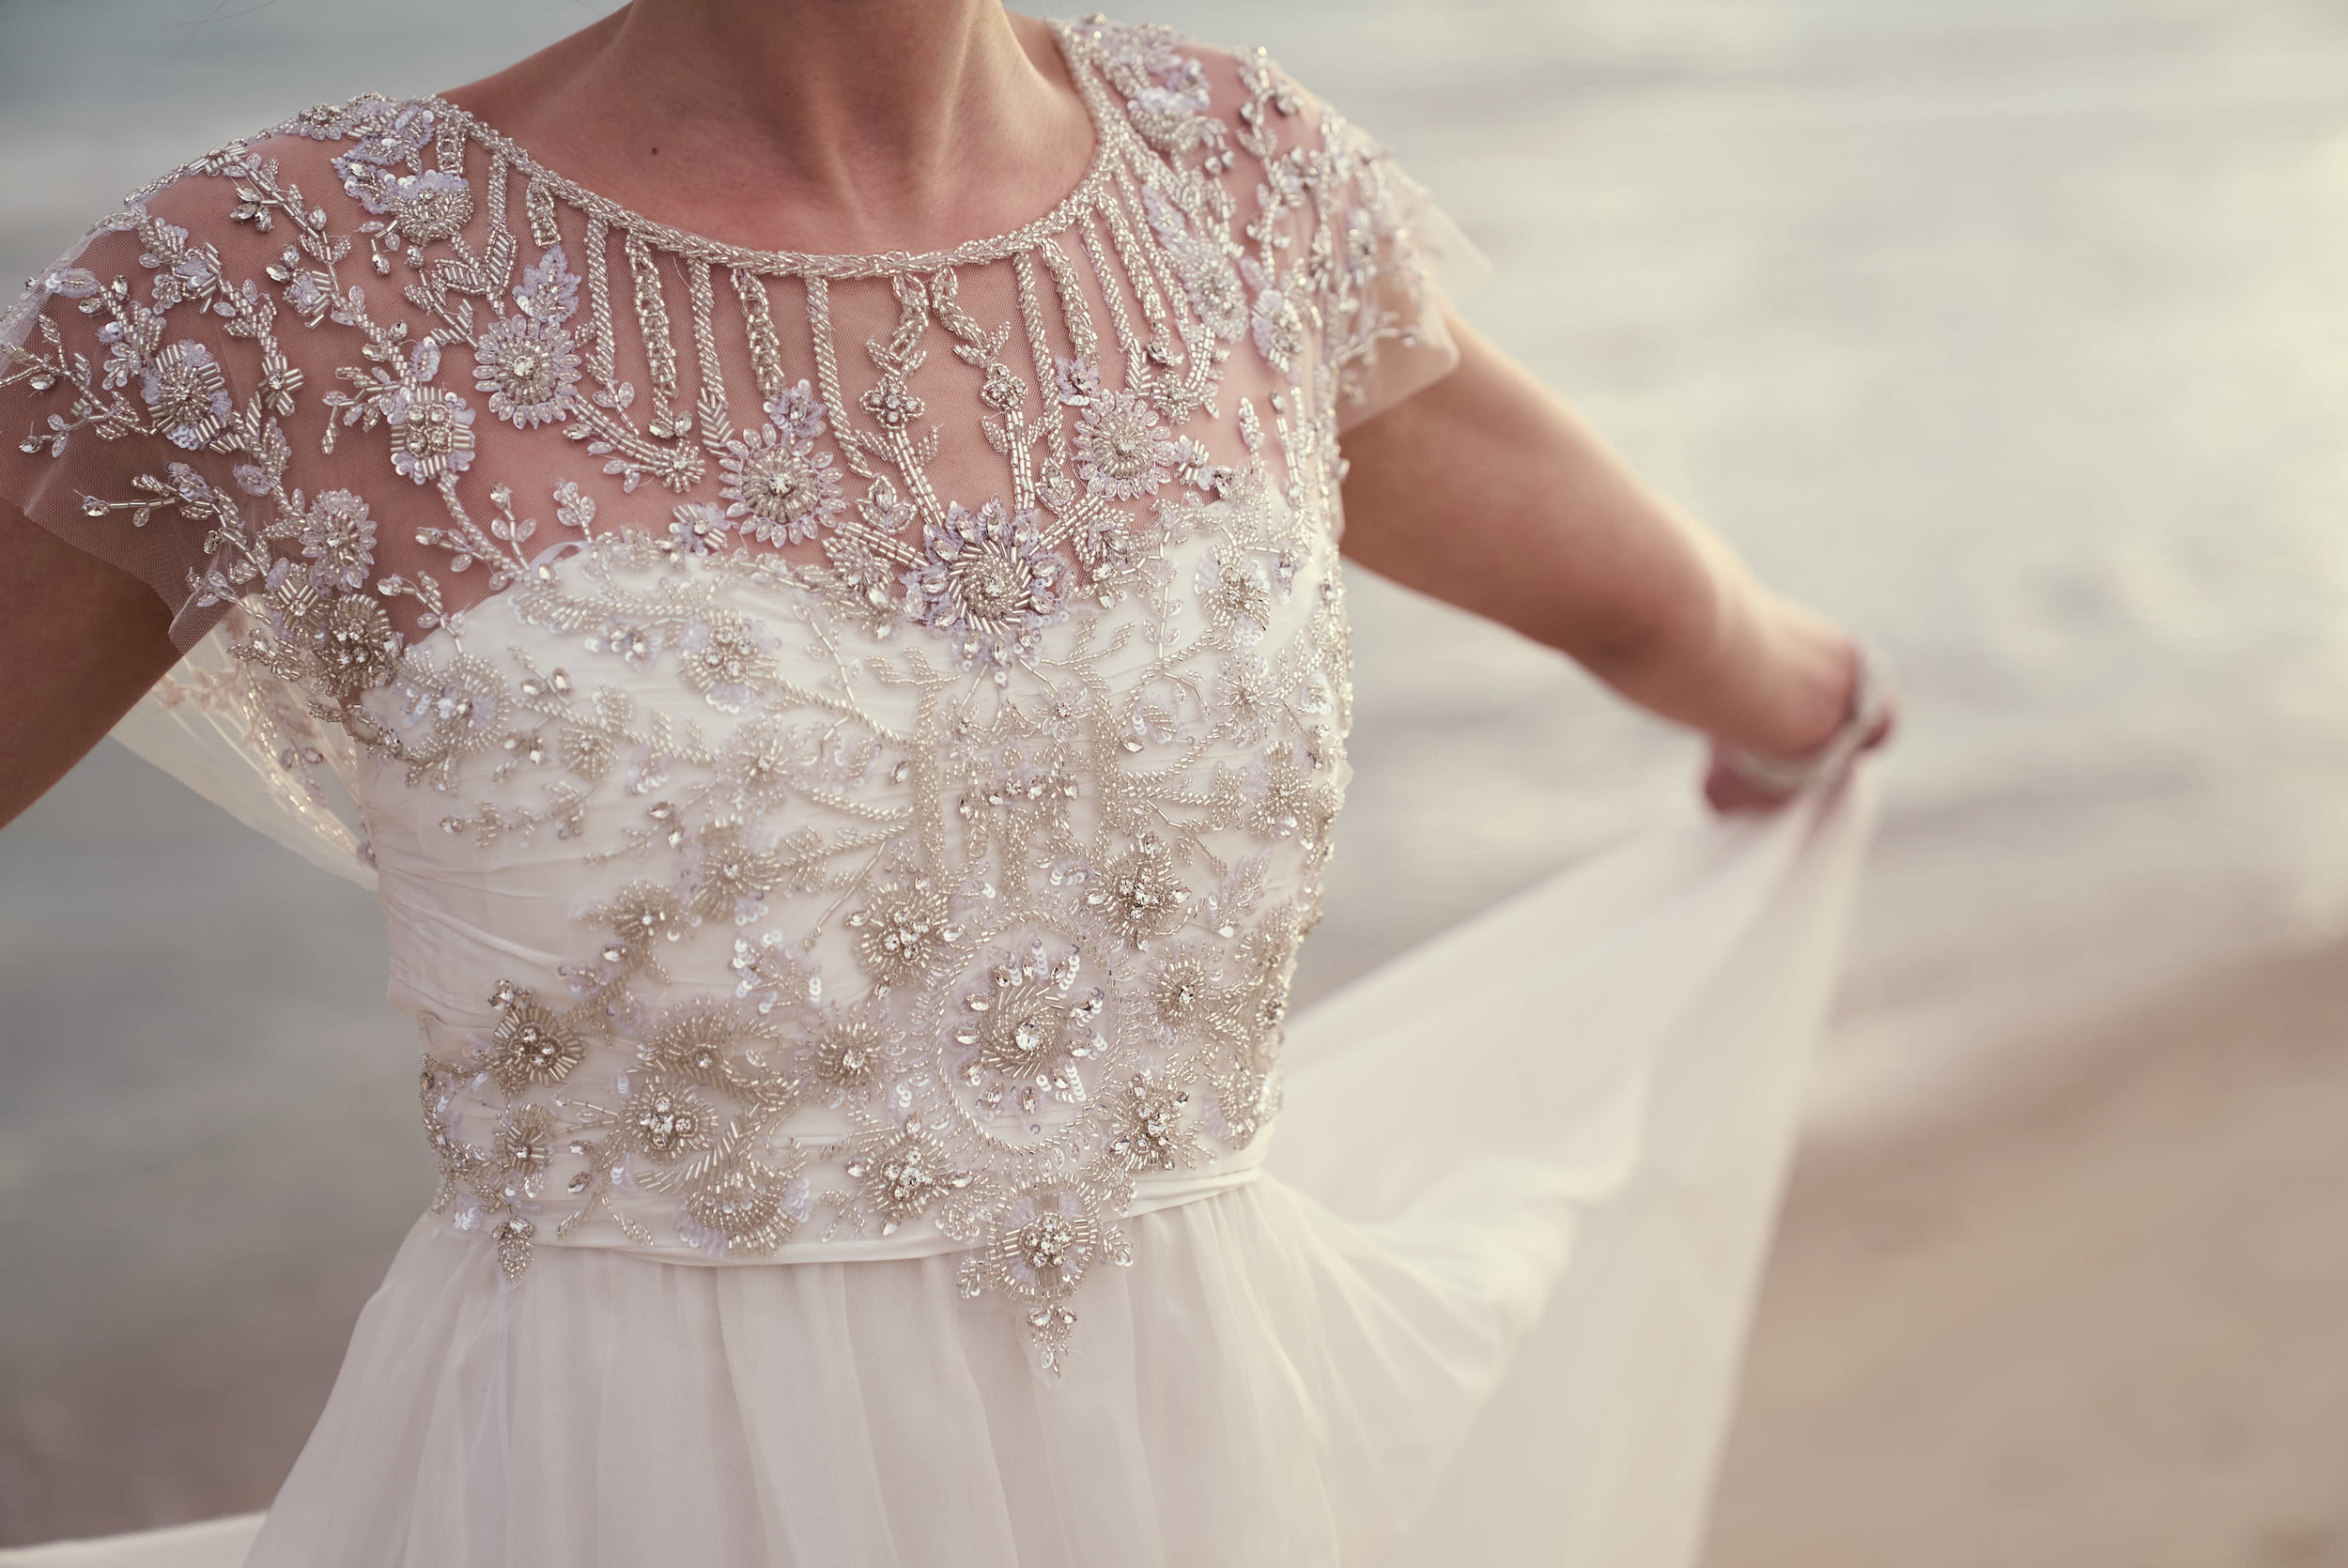 Anna Campbell Bridal Adele Wedding Dress | Vintage Inspired Bridal Gown with a Beaded Illusion Neckline